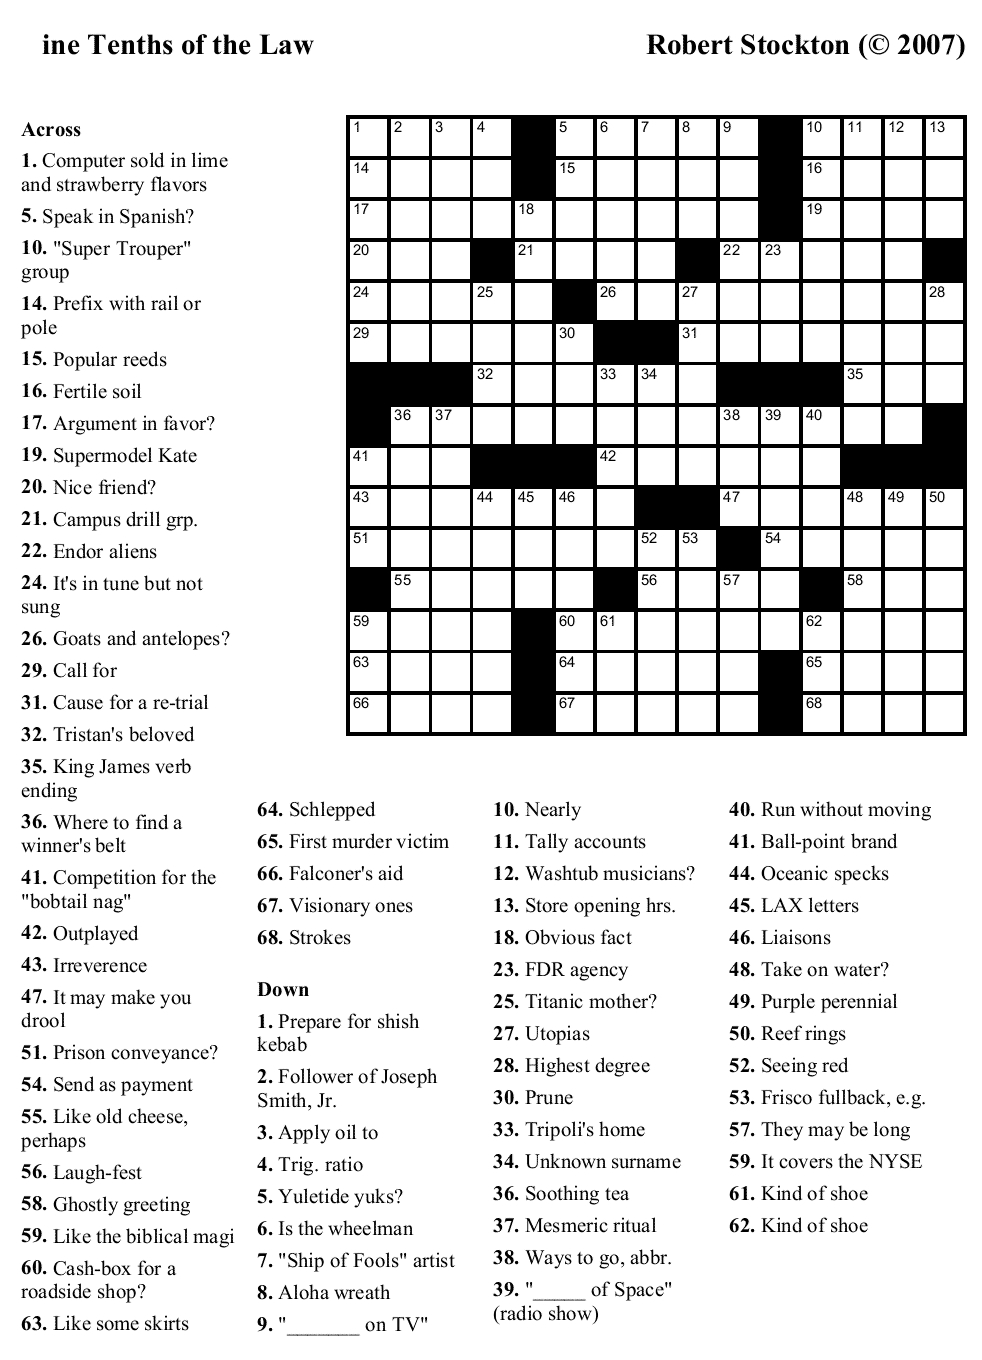 Crossword Puzzles Printable - Yahoo Image Search Results | Crossword - Crossword Puzzles Printable 6Th Grade